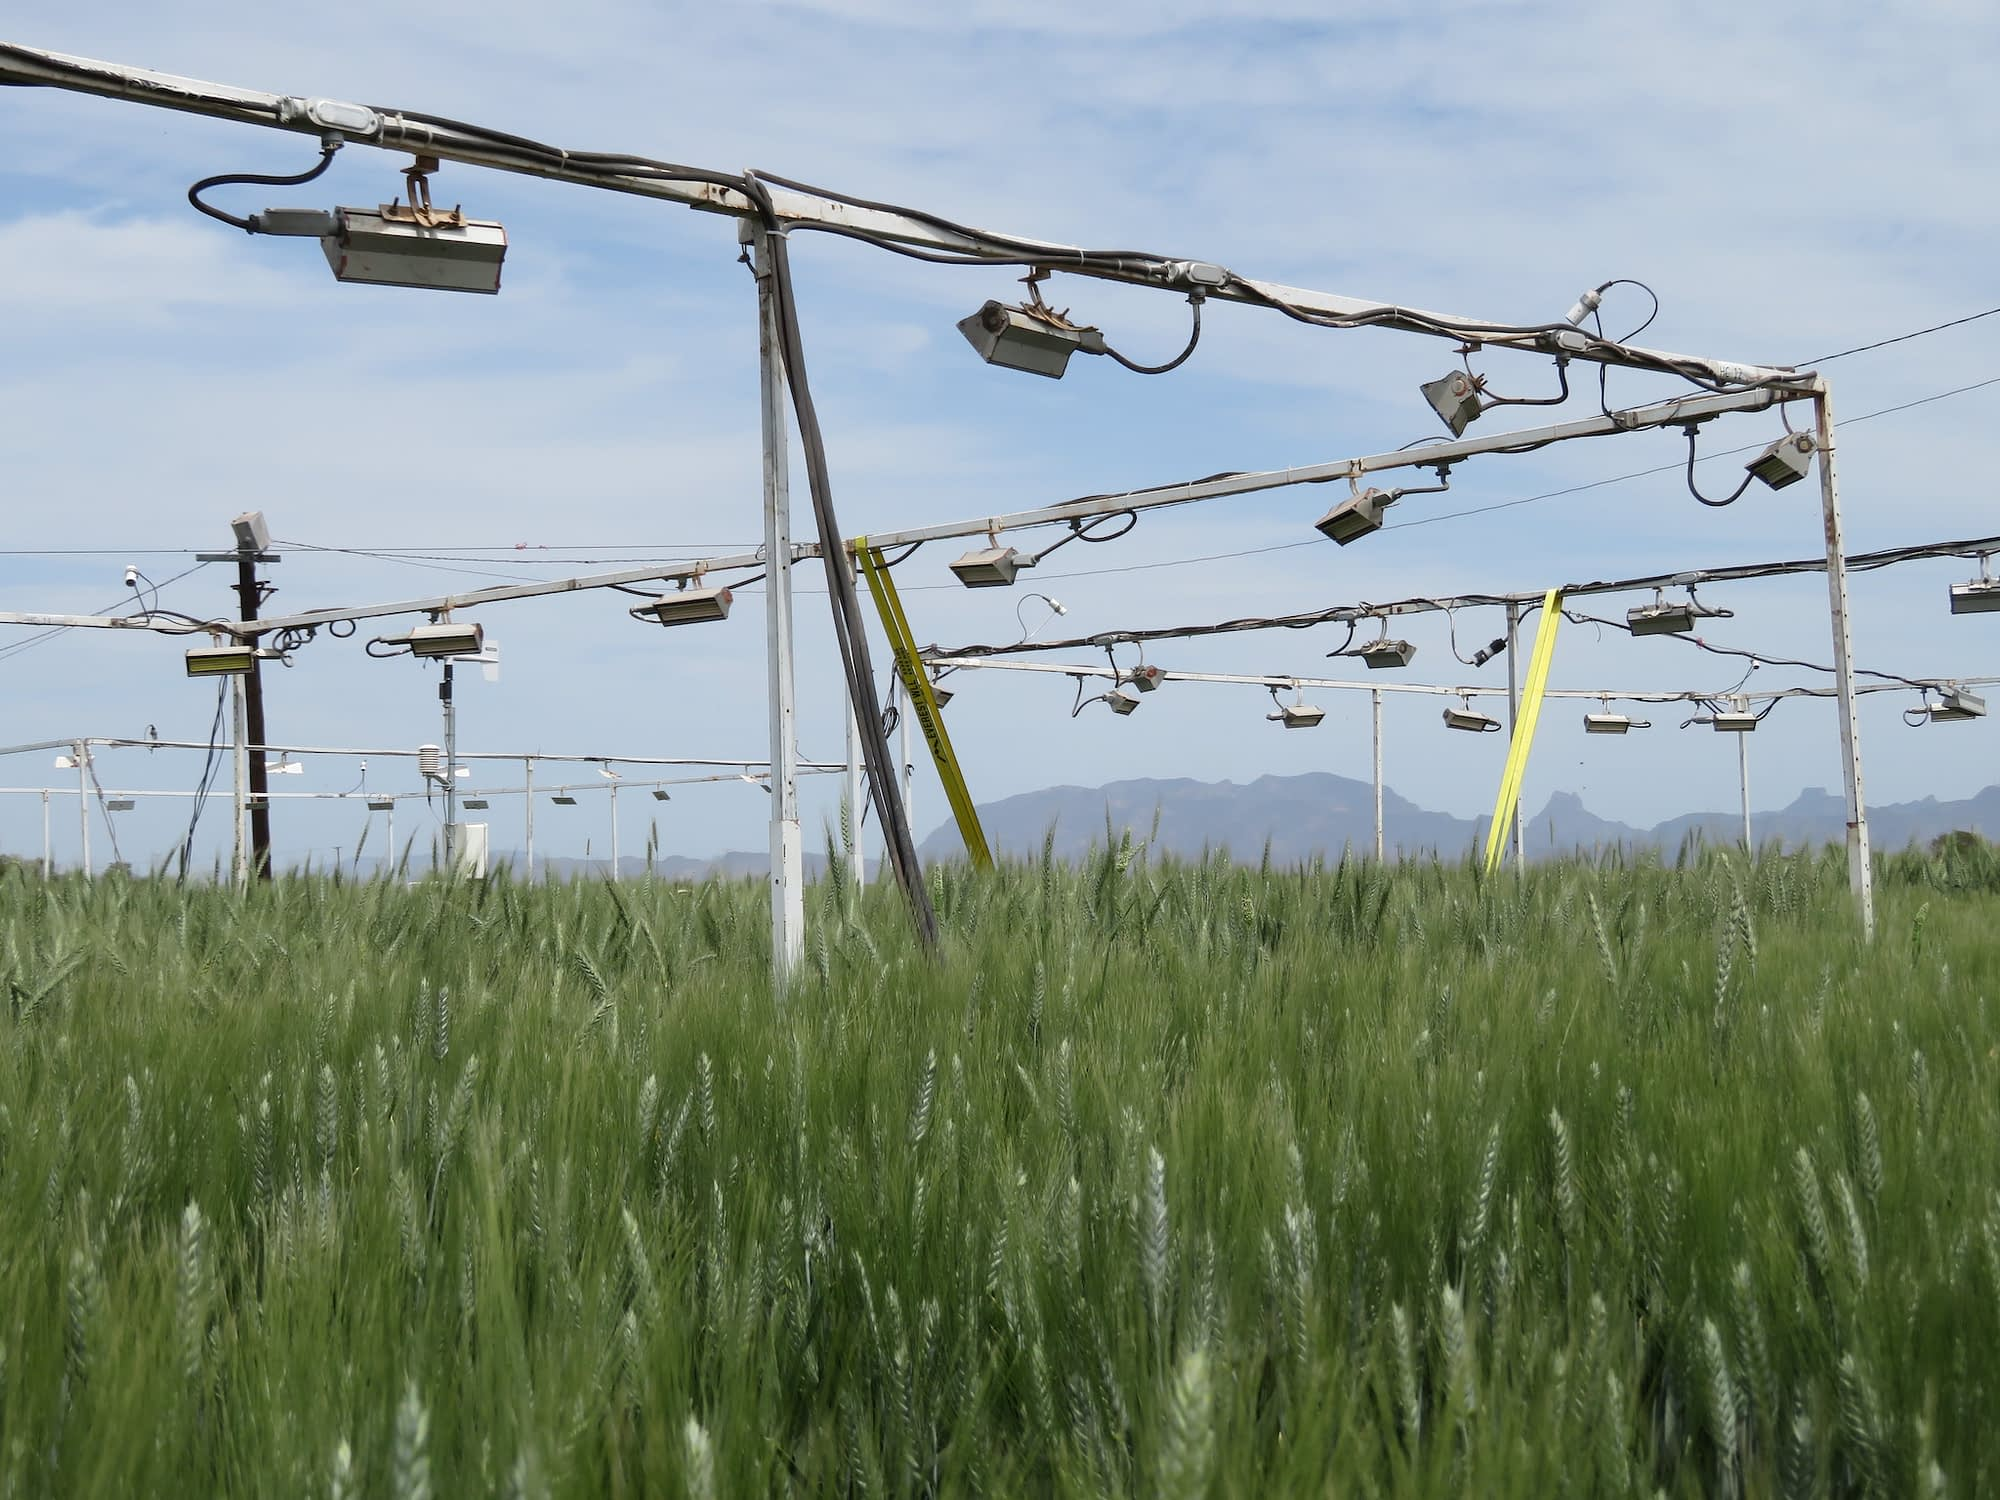 CIMMYT researchers use coverings to increase night-time temperatures and study wheat's heat tolerance mechanisms, key to overcoming climate change challenges to wheat production. (Photo: Kevin Pixley/CIMMYT)